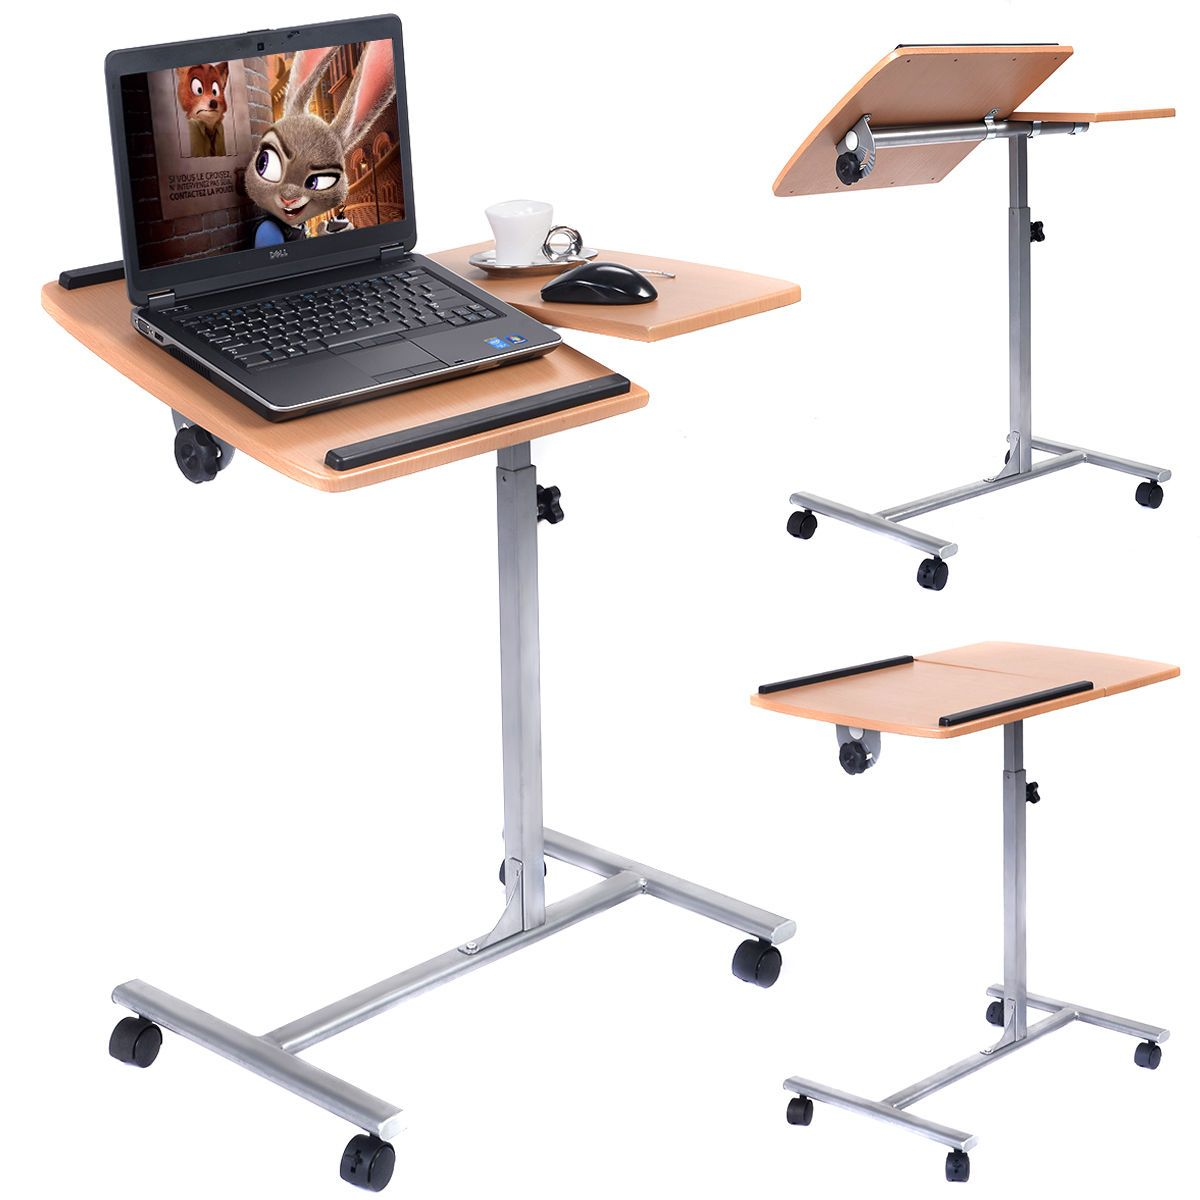 Adjustable Laptop Desk With Stand Holder And Wheels Mdf Mesa